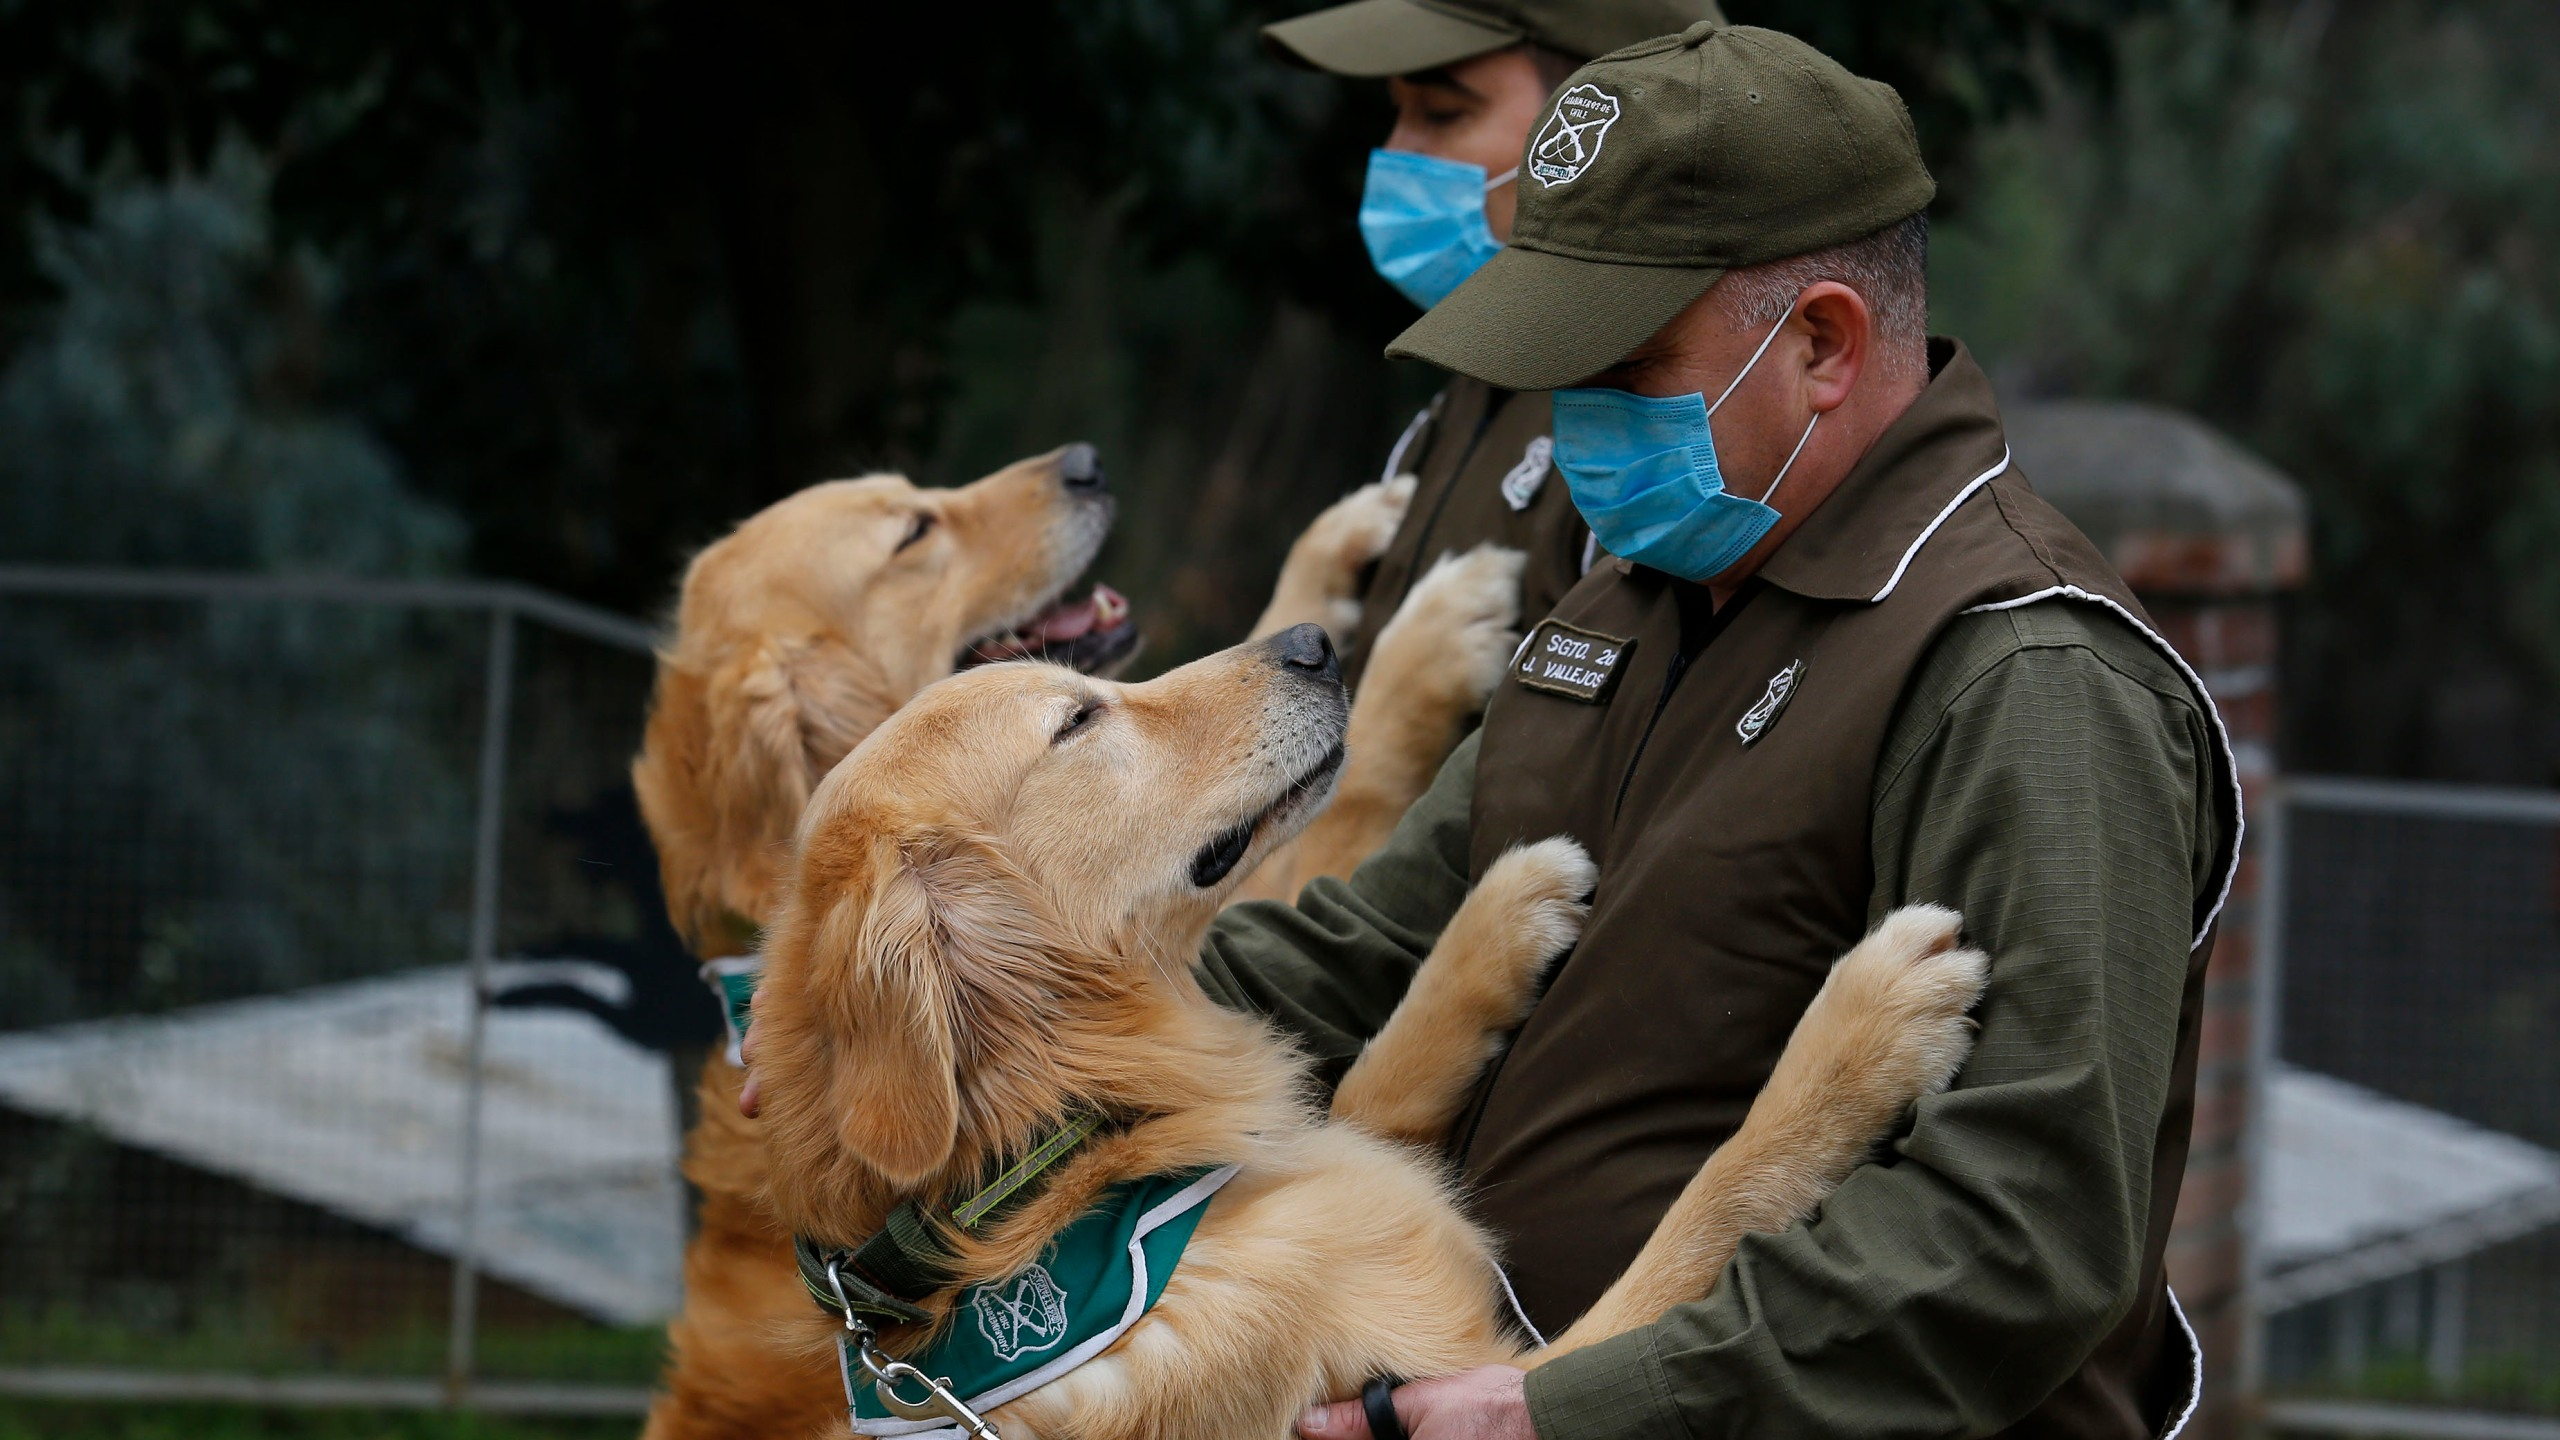 Chilean police officers and trainers work with the dogs called Keylin and Clifford at Carabineros de Chile Dog Training School in the Parque Metropolitano on July 17, 2020 in Santiago, Chile. (Marcelo Hernandez/Getty Images)